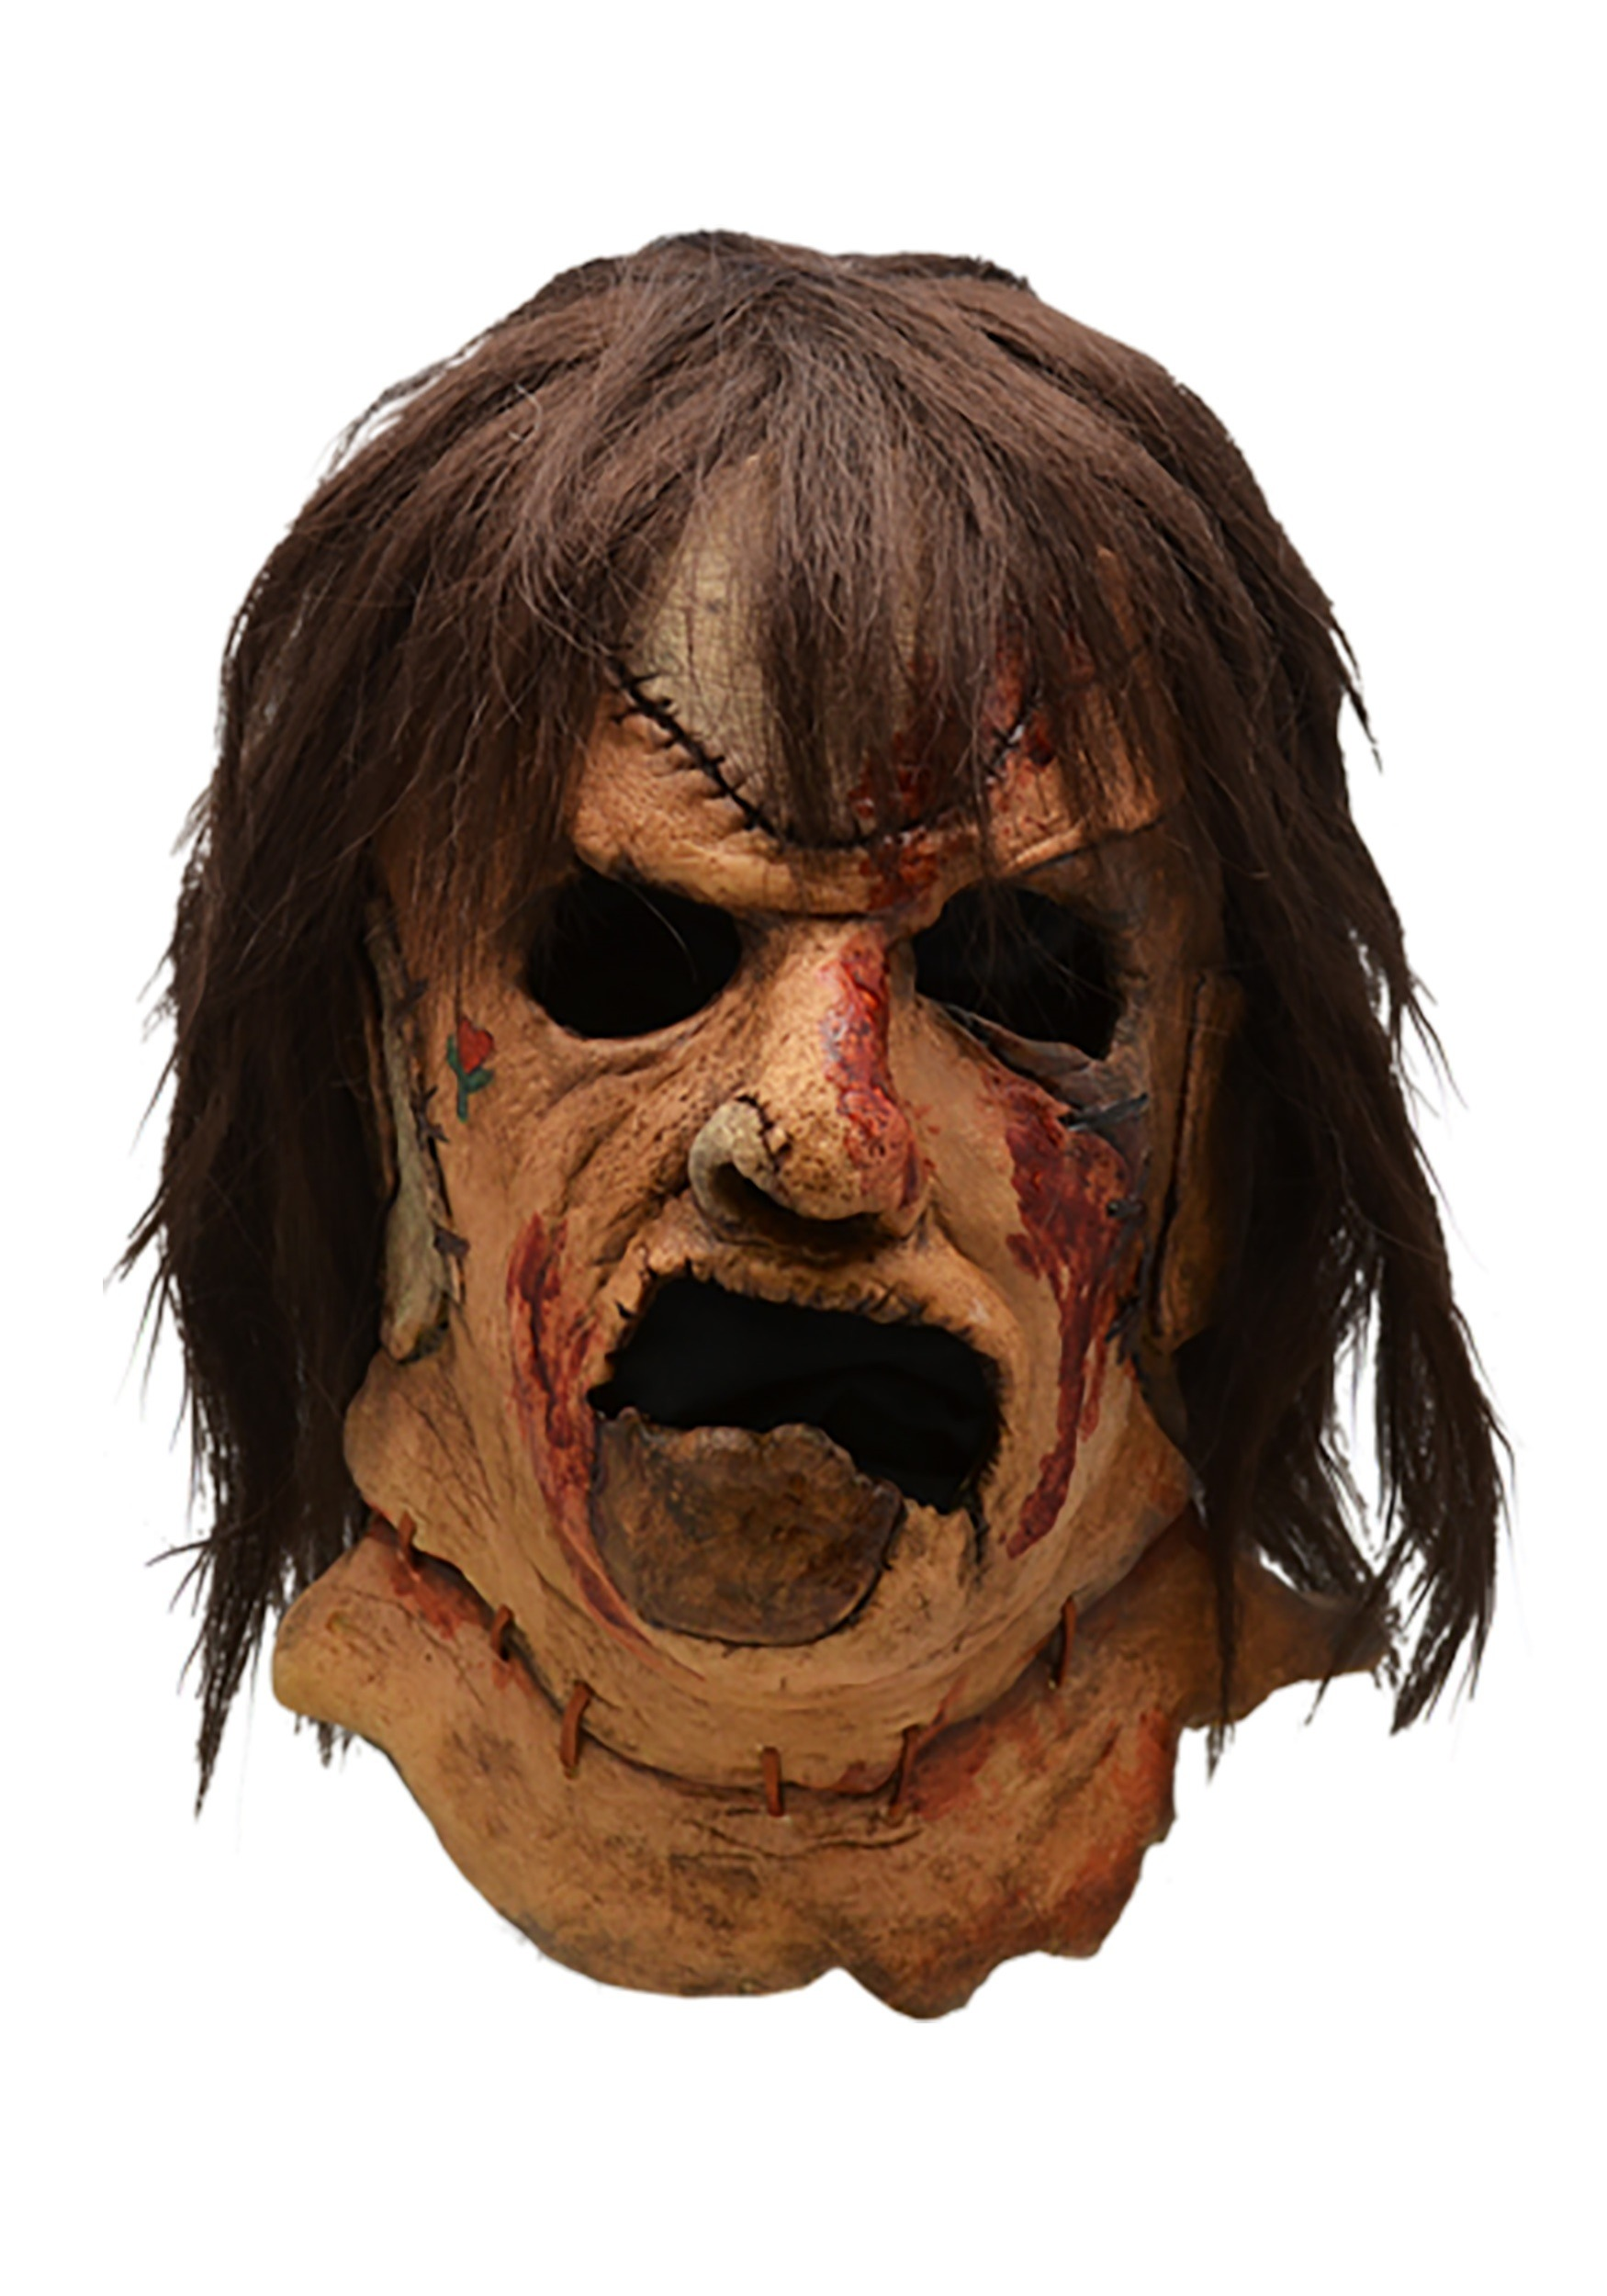 Leatherface Face Mask Texas Chainsaw Massacre 1974 Halloween Costume Accessory